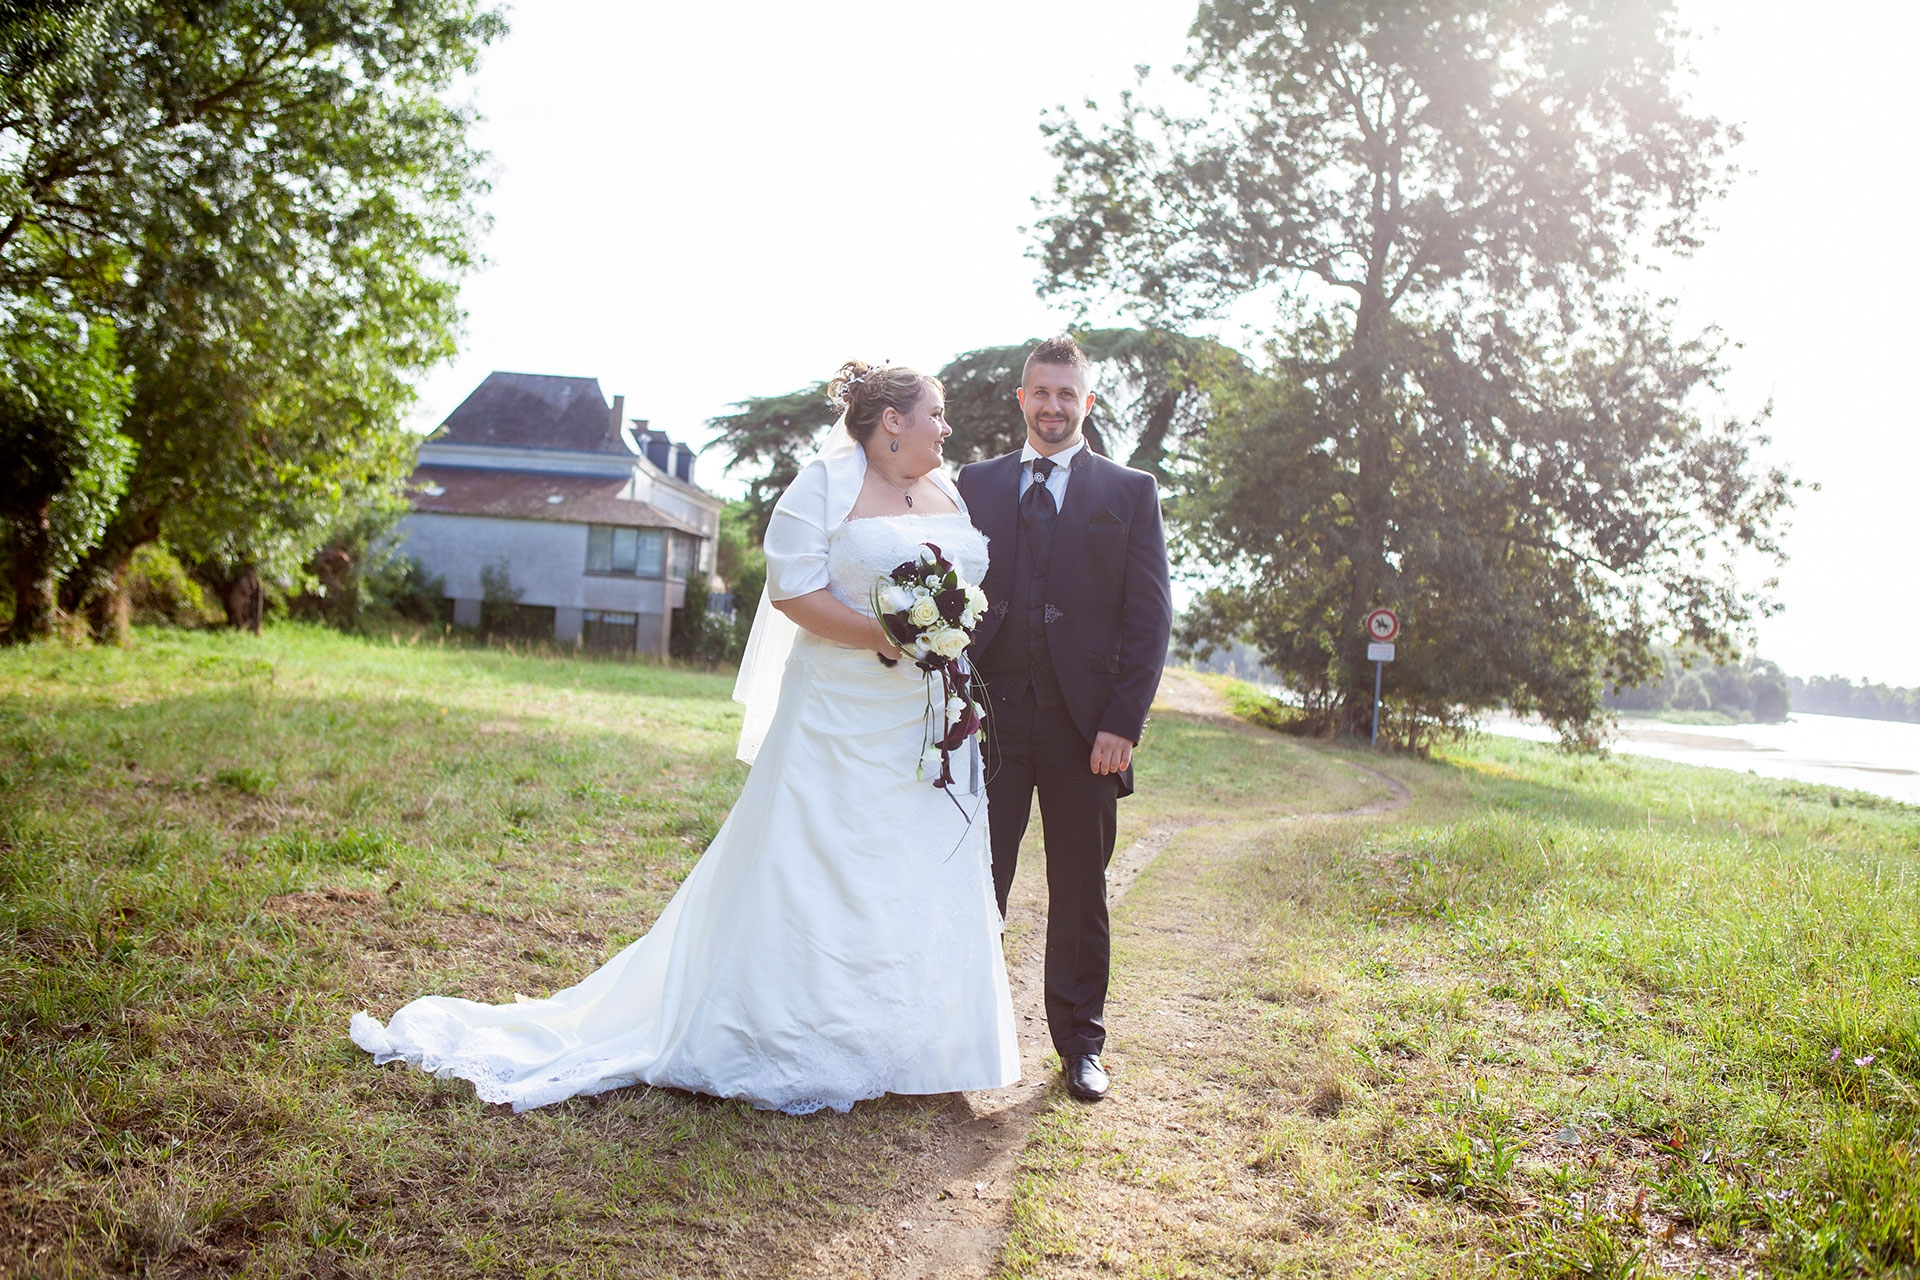 particuliers-evenements-mariages-oui-elodie&wilson-15